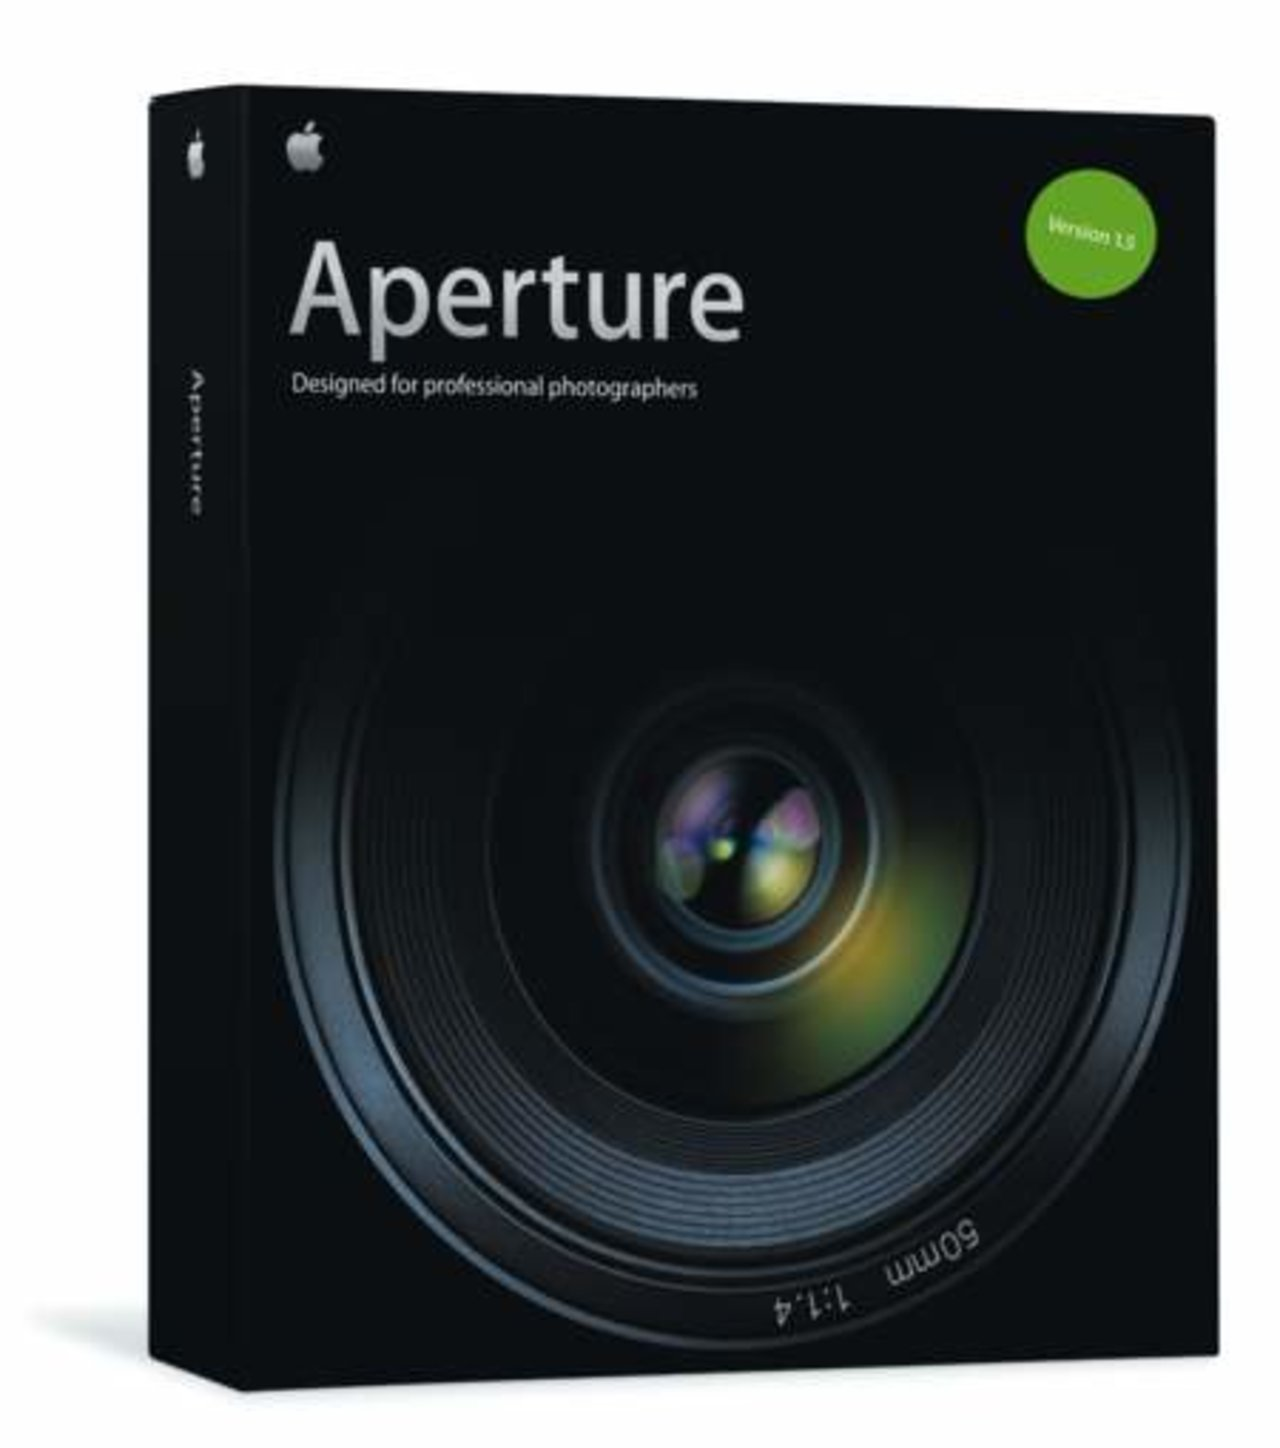 Gallery - Apple Aperture 1.5 - First Look - Photo 1- Pocket-lint